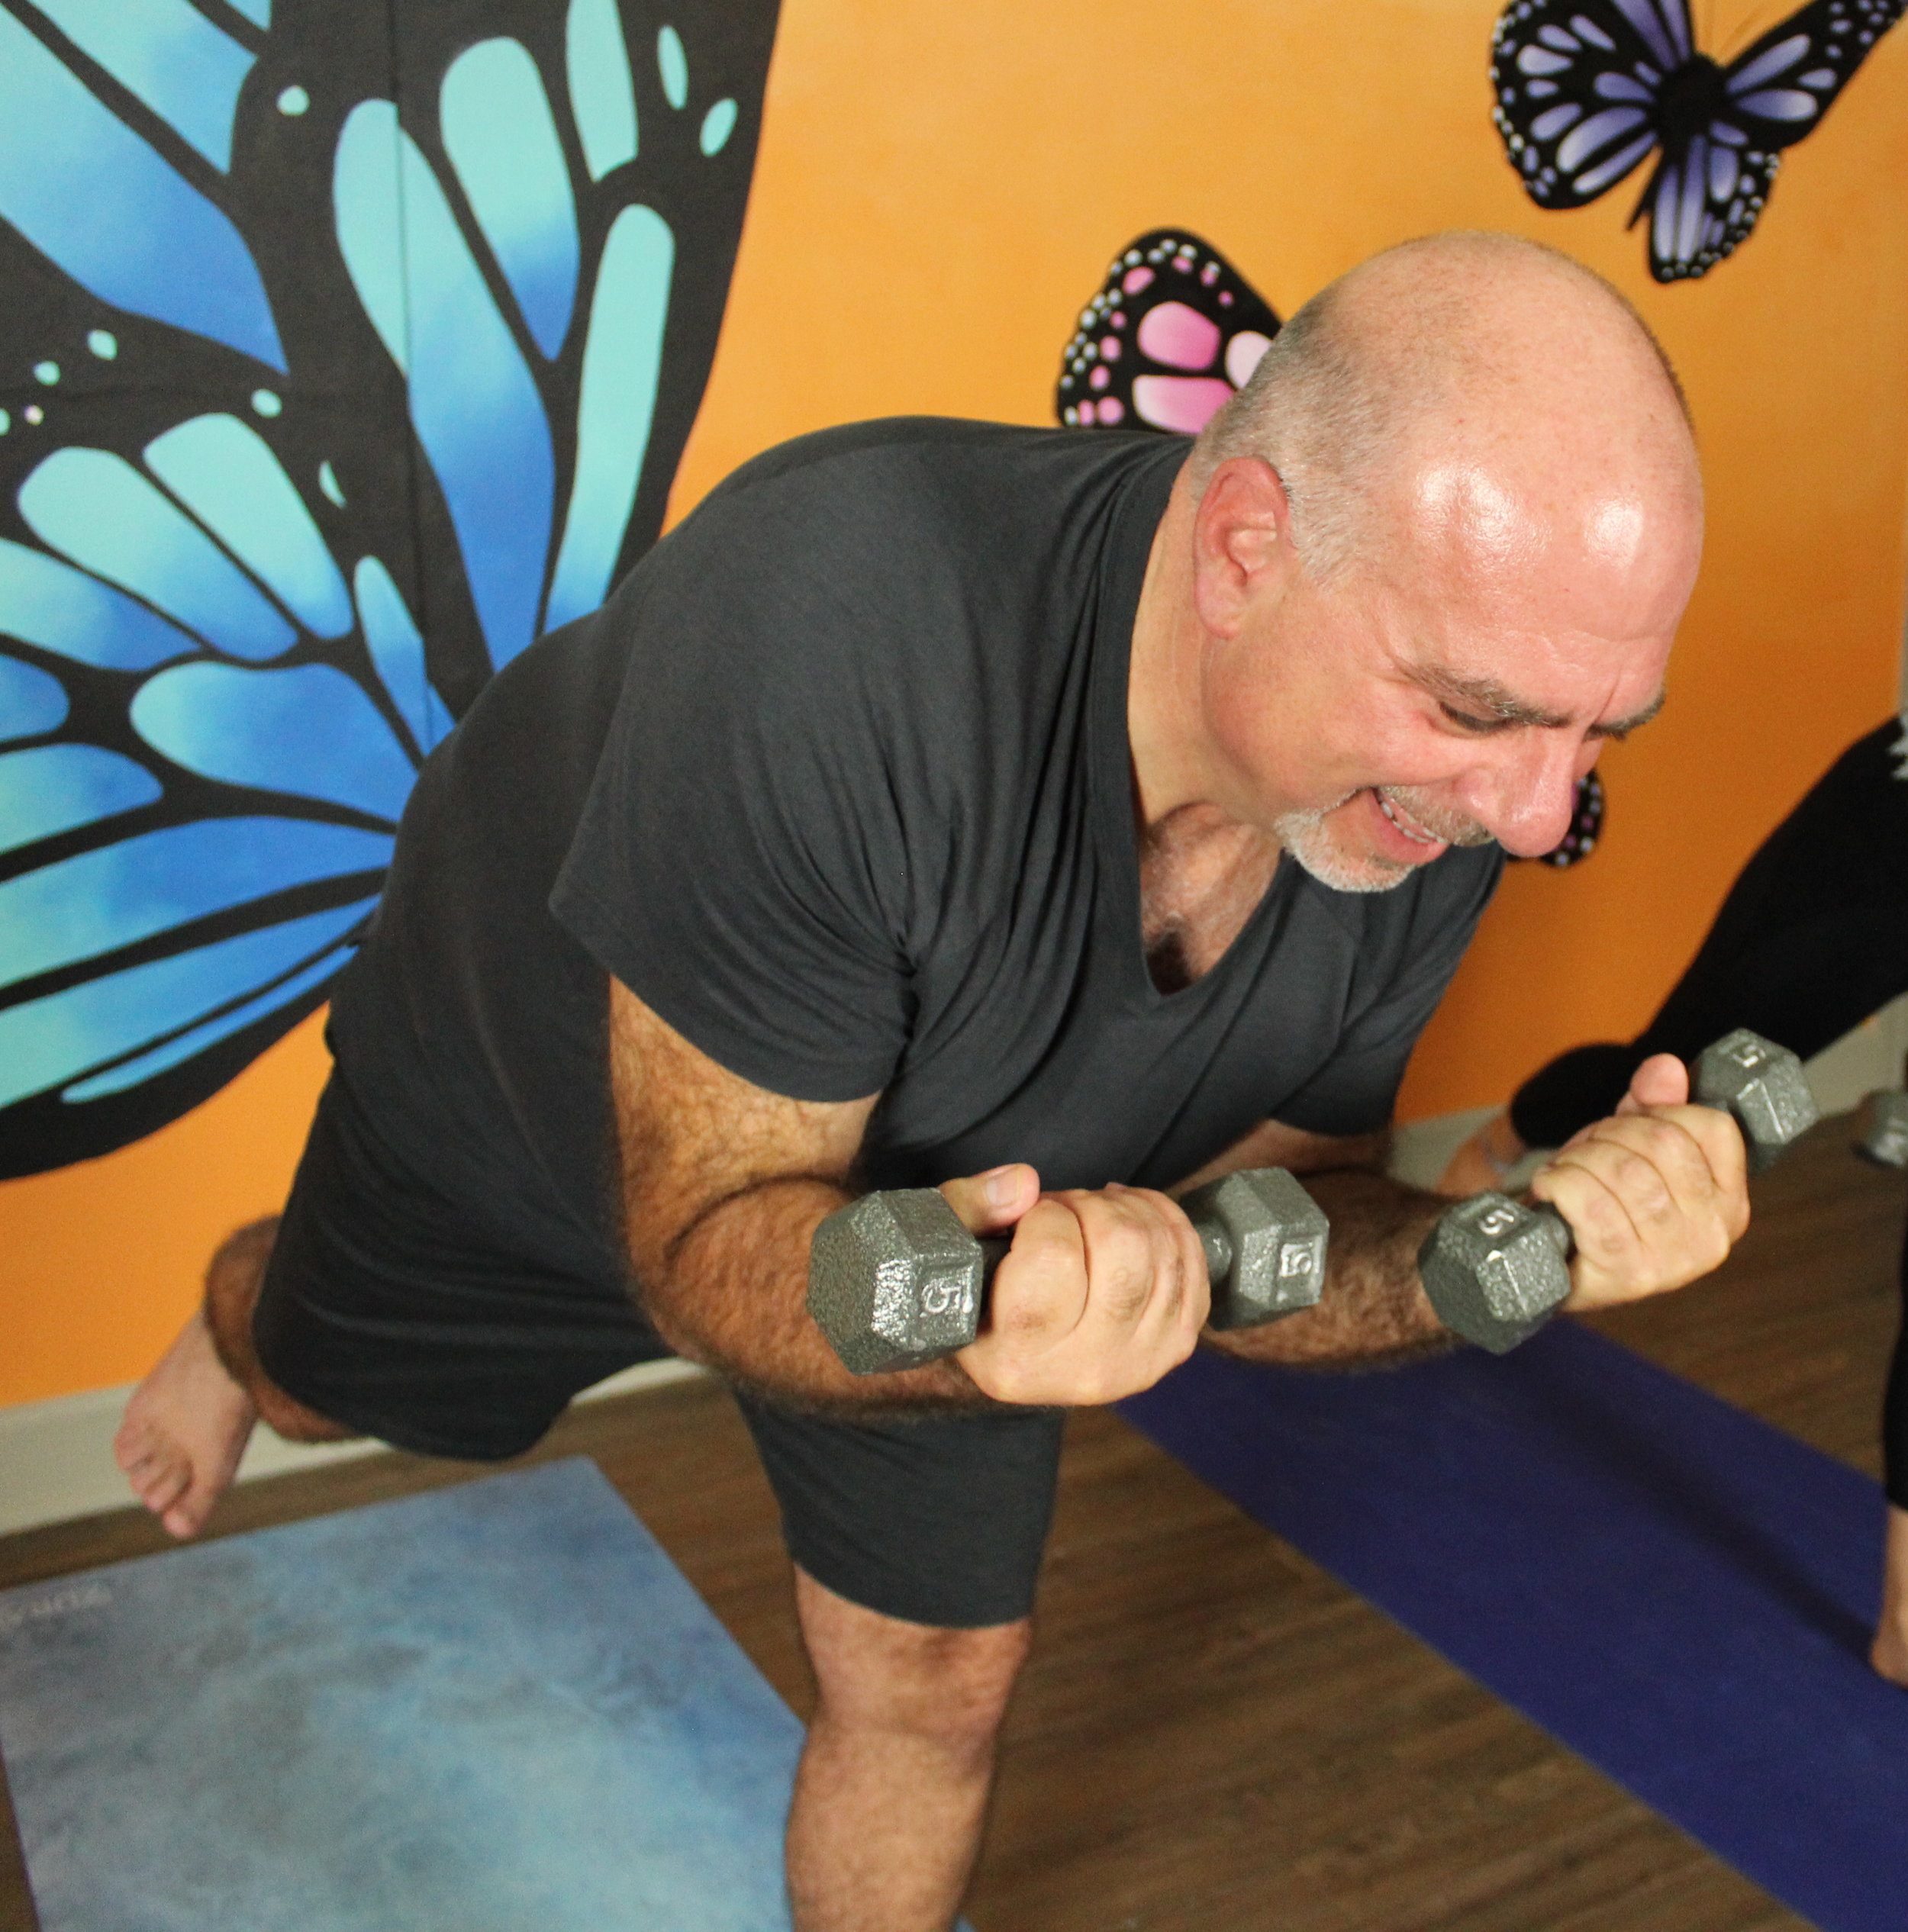 "Men's Workshop - Saturday, April 13, 20192-3:30pm with Scott Gobetz""I am not flexible, and I am going to look ridiculous."" That's what I hear the most from men about yoga. Don't worry about either thing. You need to be more flexible and no one cares what you look like.Come spend and 1.5 hours with Scott Gobetz, learning about why you need to do yoga. With many benefits for mind and body, yoga has changed my life. We will also finish with a beer and make a plan to get you started on your yoga journey."